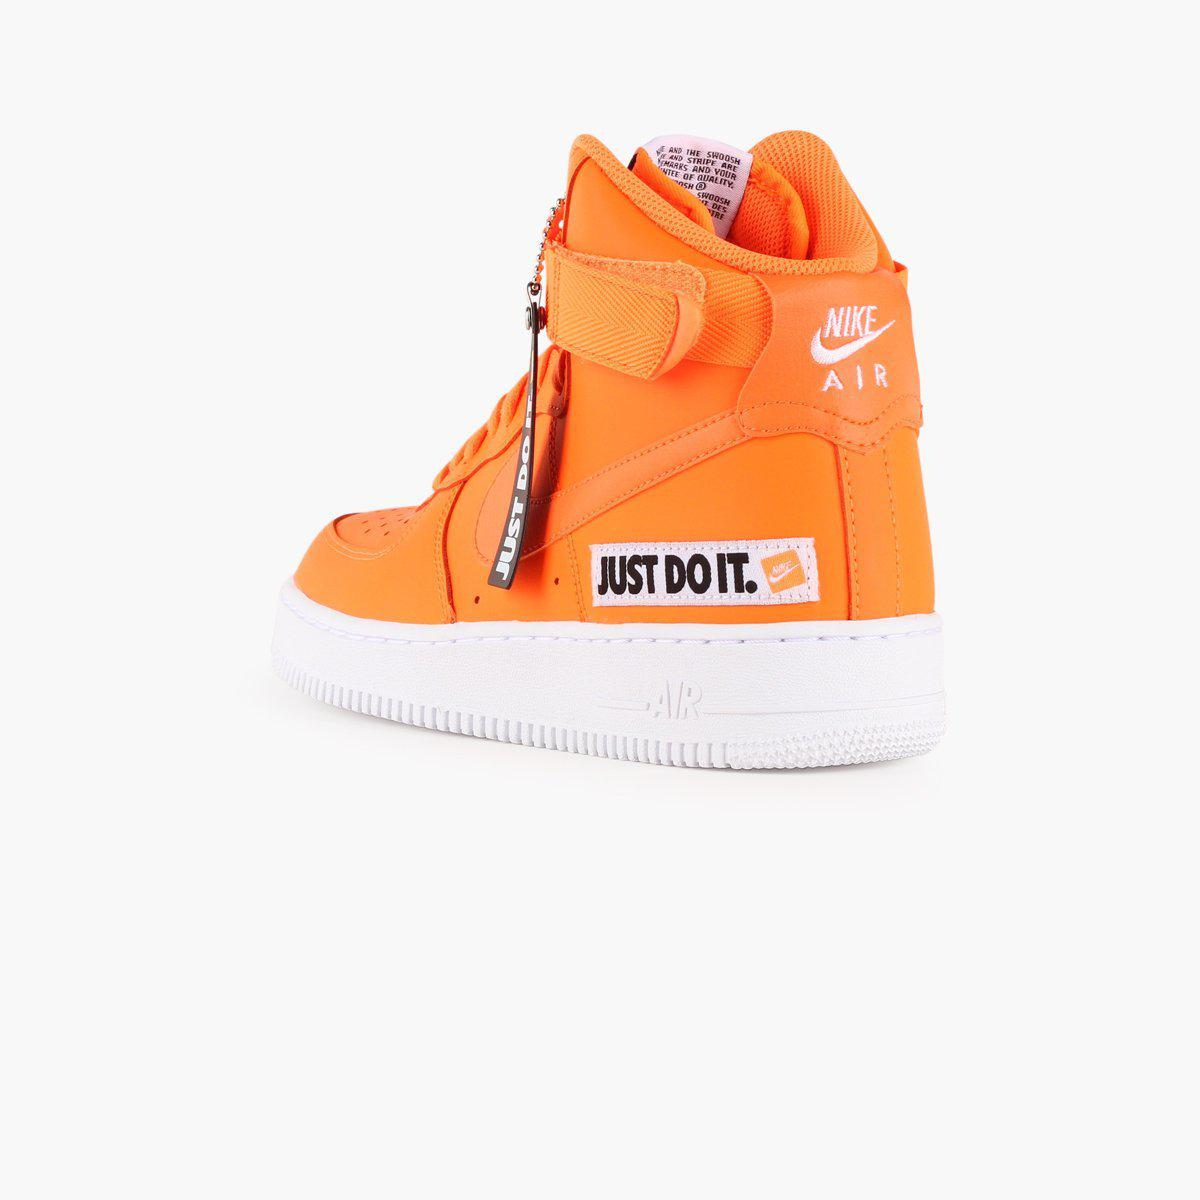 ad470303d764 Nike - Orange Air Force 1 High Lx Leather Women s - Lyst. View fullscreen